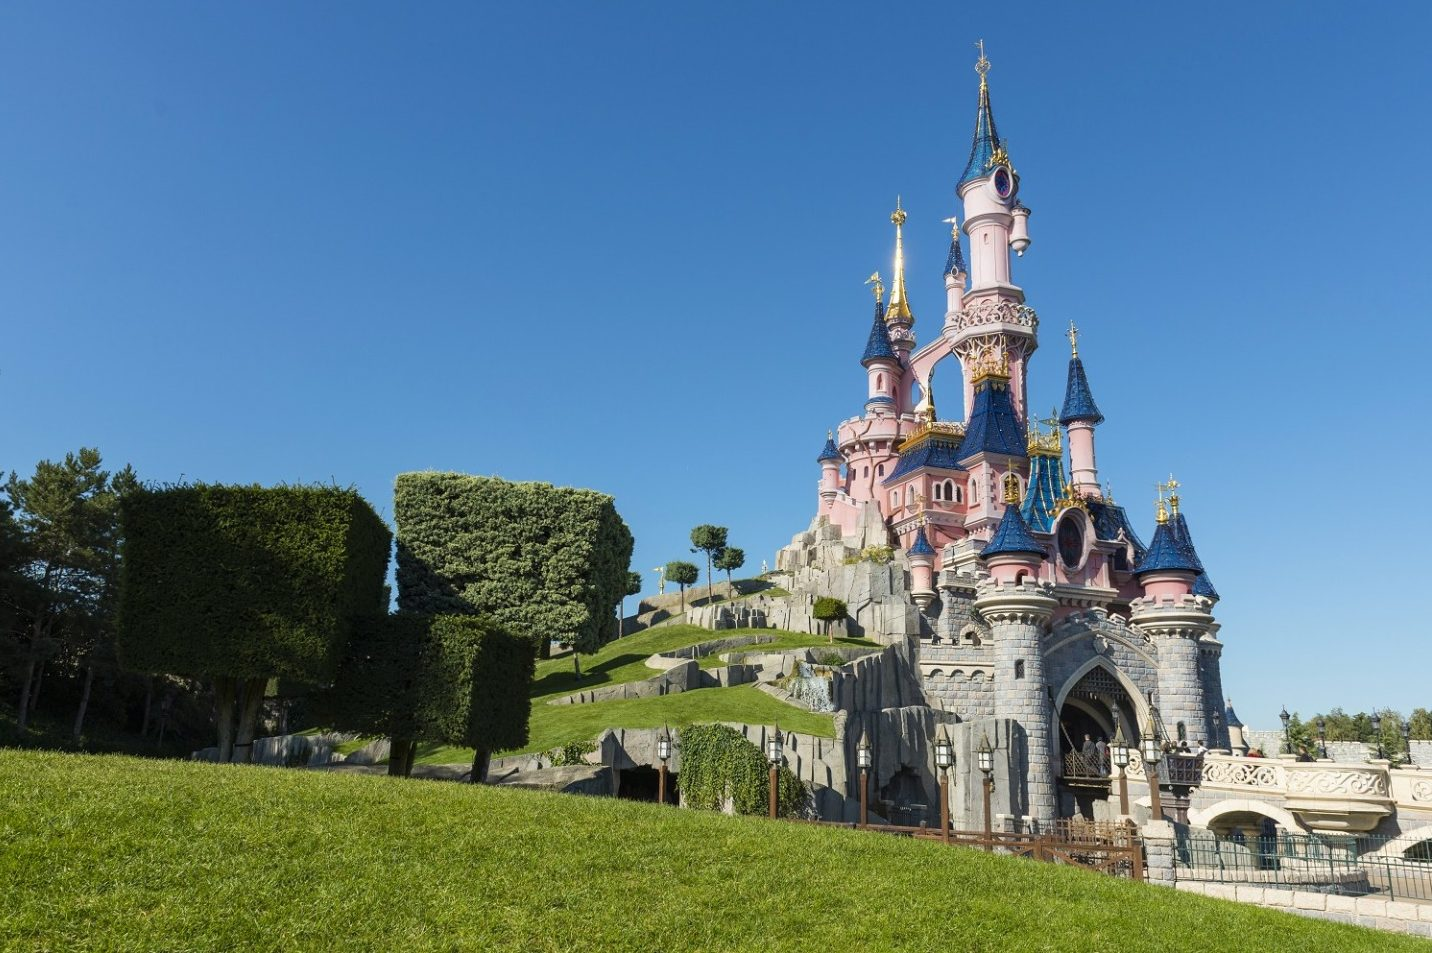 Museums and Magic - Sleeping Beauty Castle